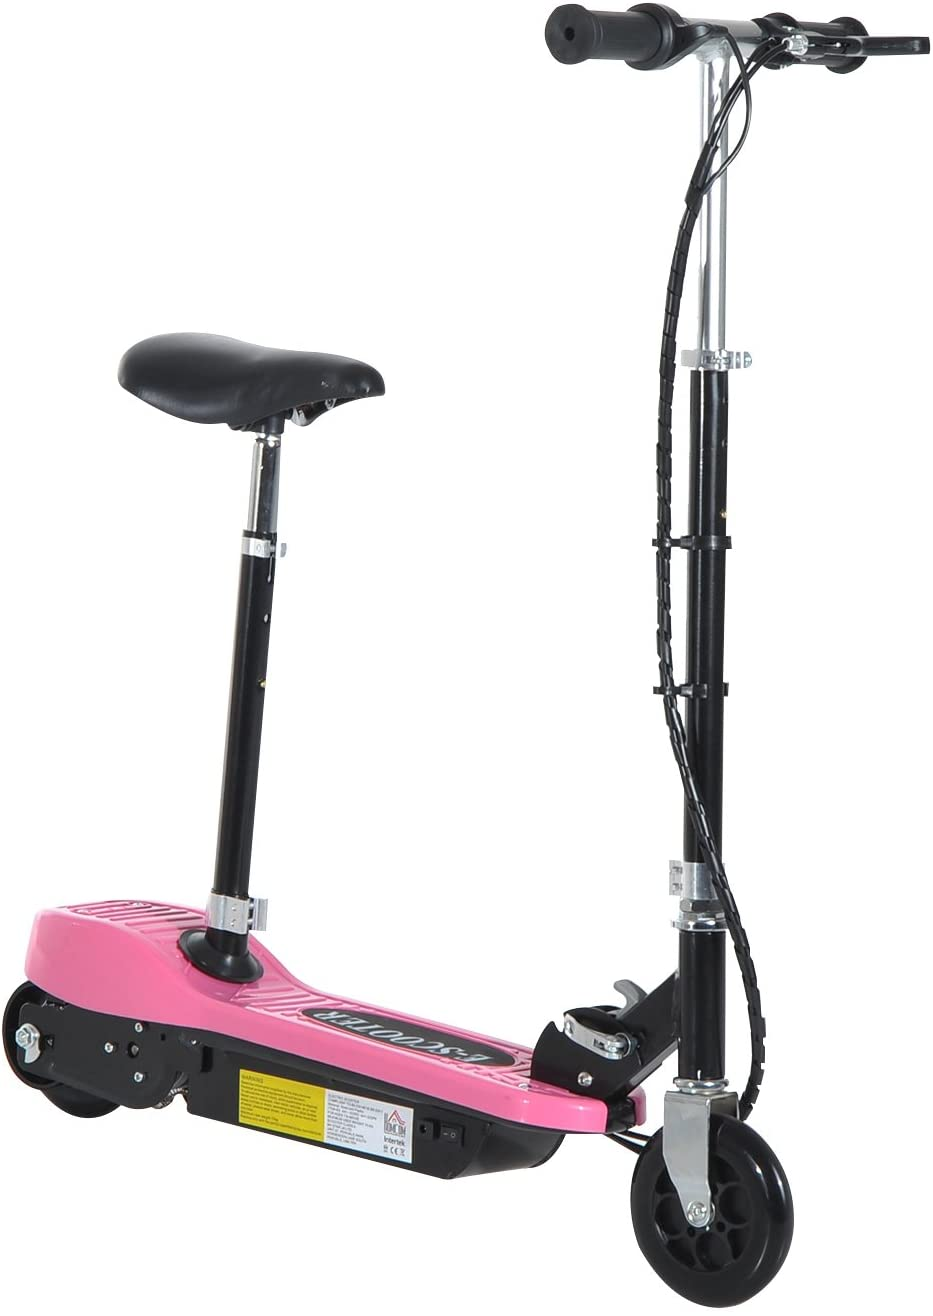 Outdoor Electric E Scooter for kids